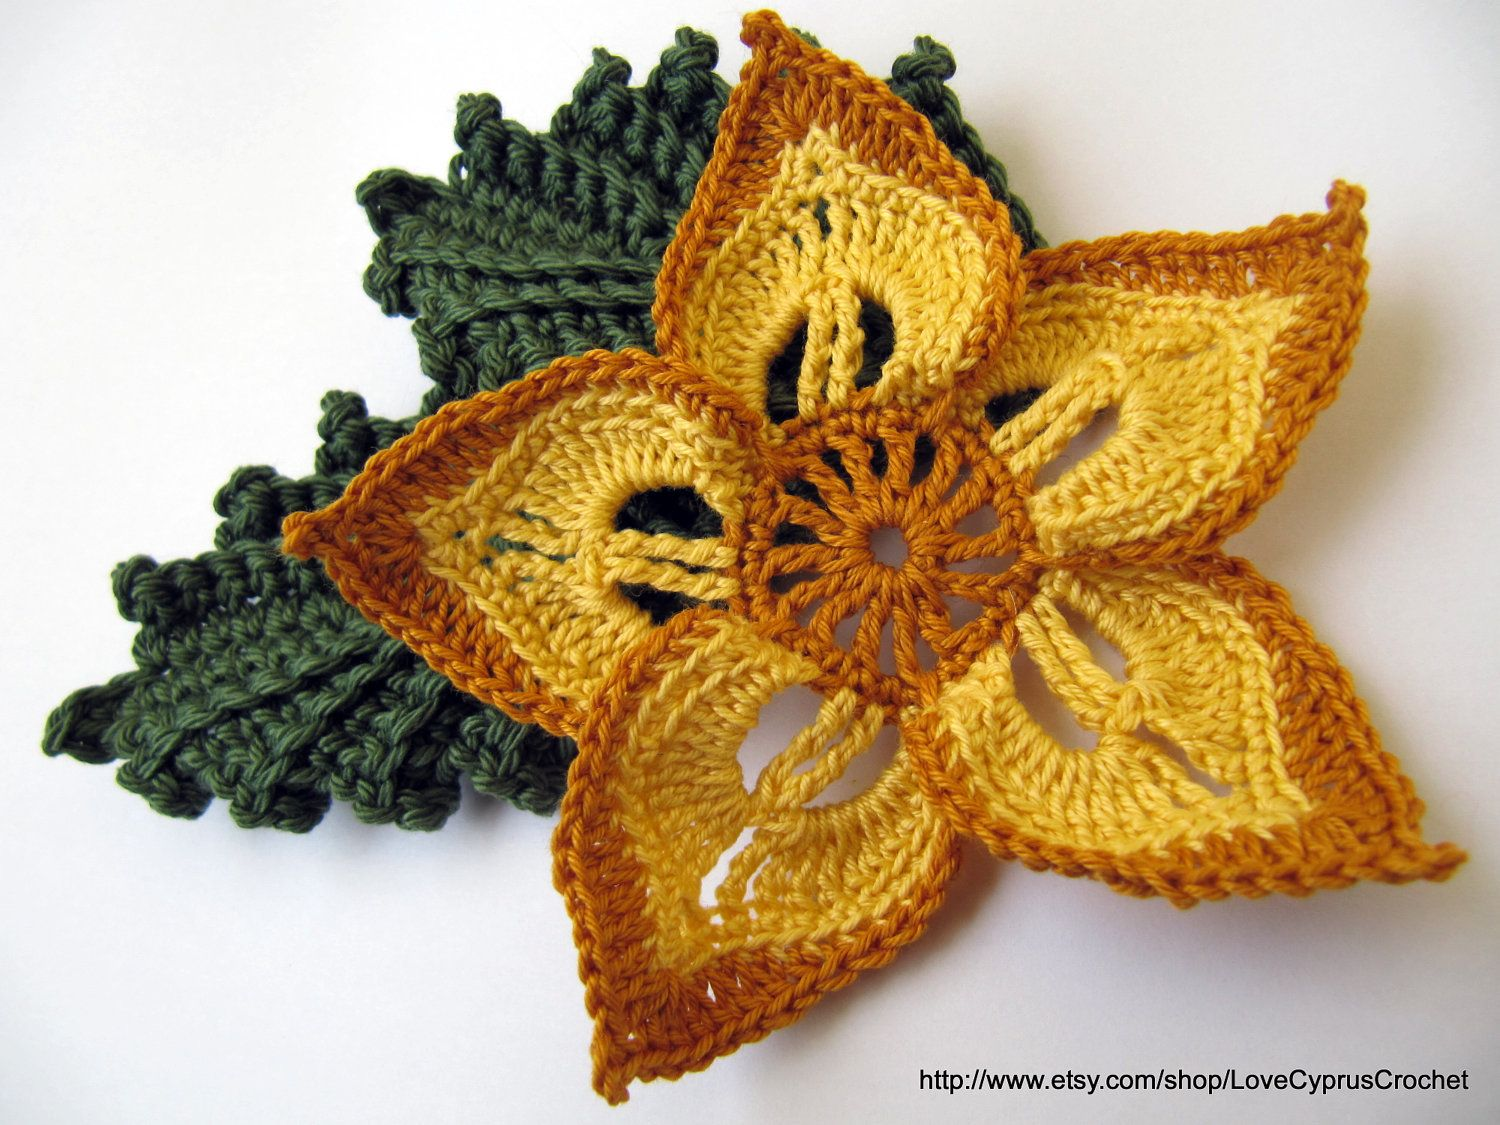 Easy left handed crochet patterns wow image results diy ravelry beautiful flower pattern pattern by lyubava crochet very pretty pattern not free but stilllook at my other pin and it is the chart free from the dt1010fo